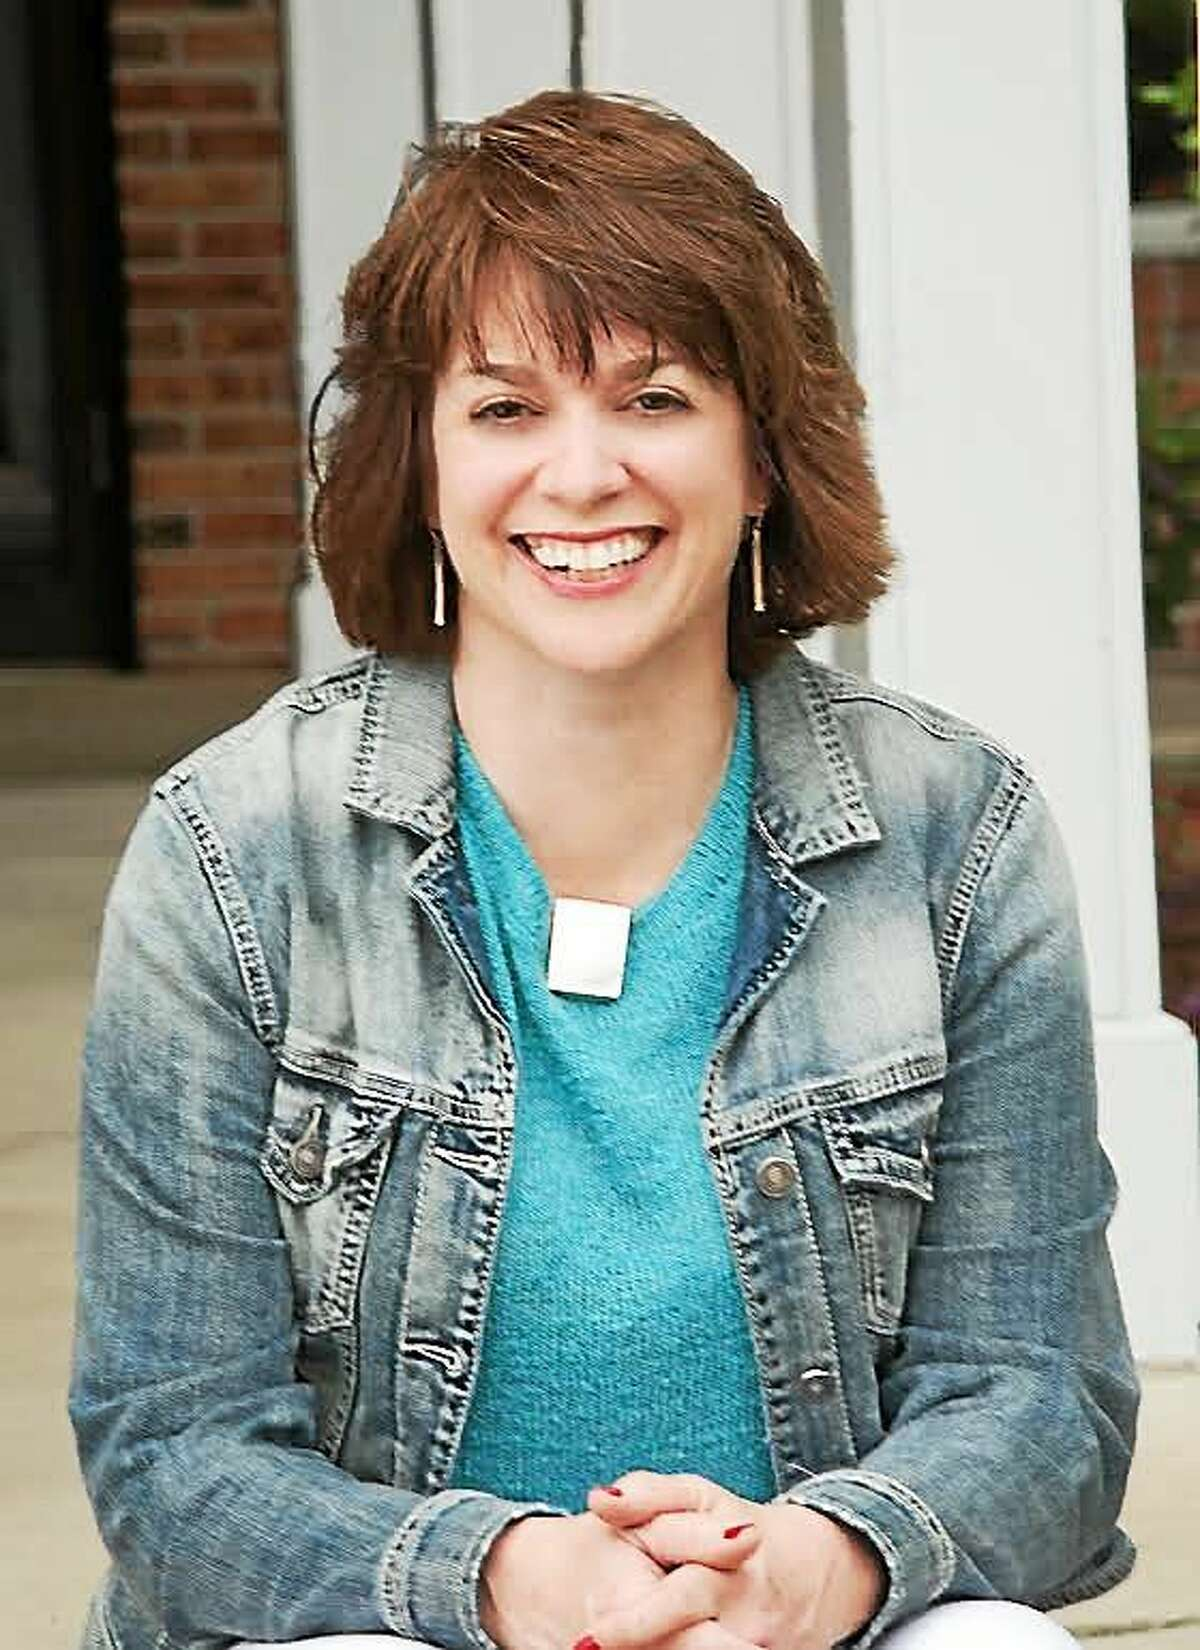 Durham native Kristan Higgins writes laugh-out-loud romantic comedies featuring regular people, quirky families, beautiful settings and, of course, adorable pets.